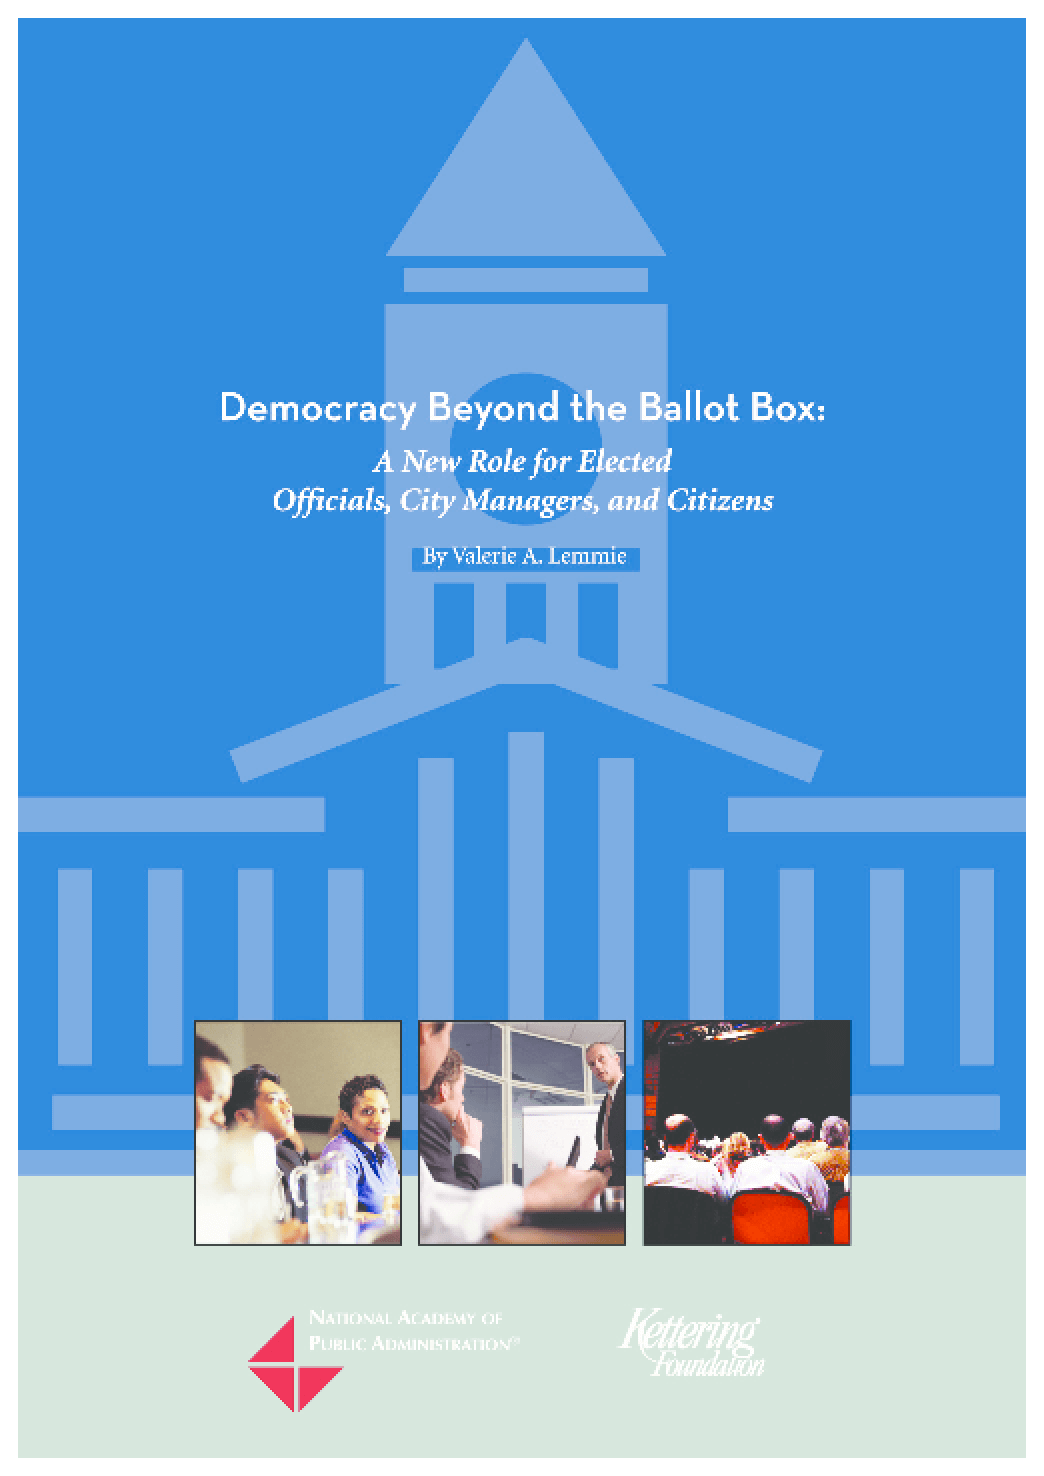 Democracy Beyond the Ballot Box: A New Role for Elected Officials, City Managers, and Citizens